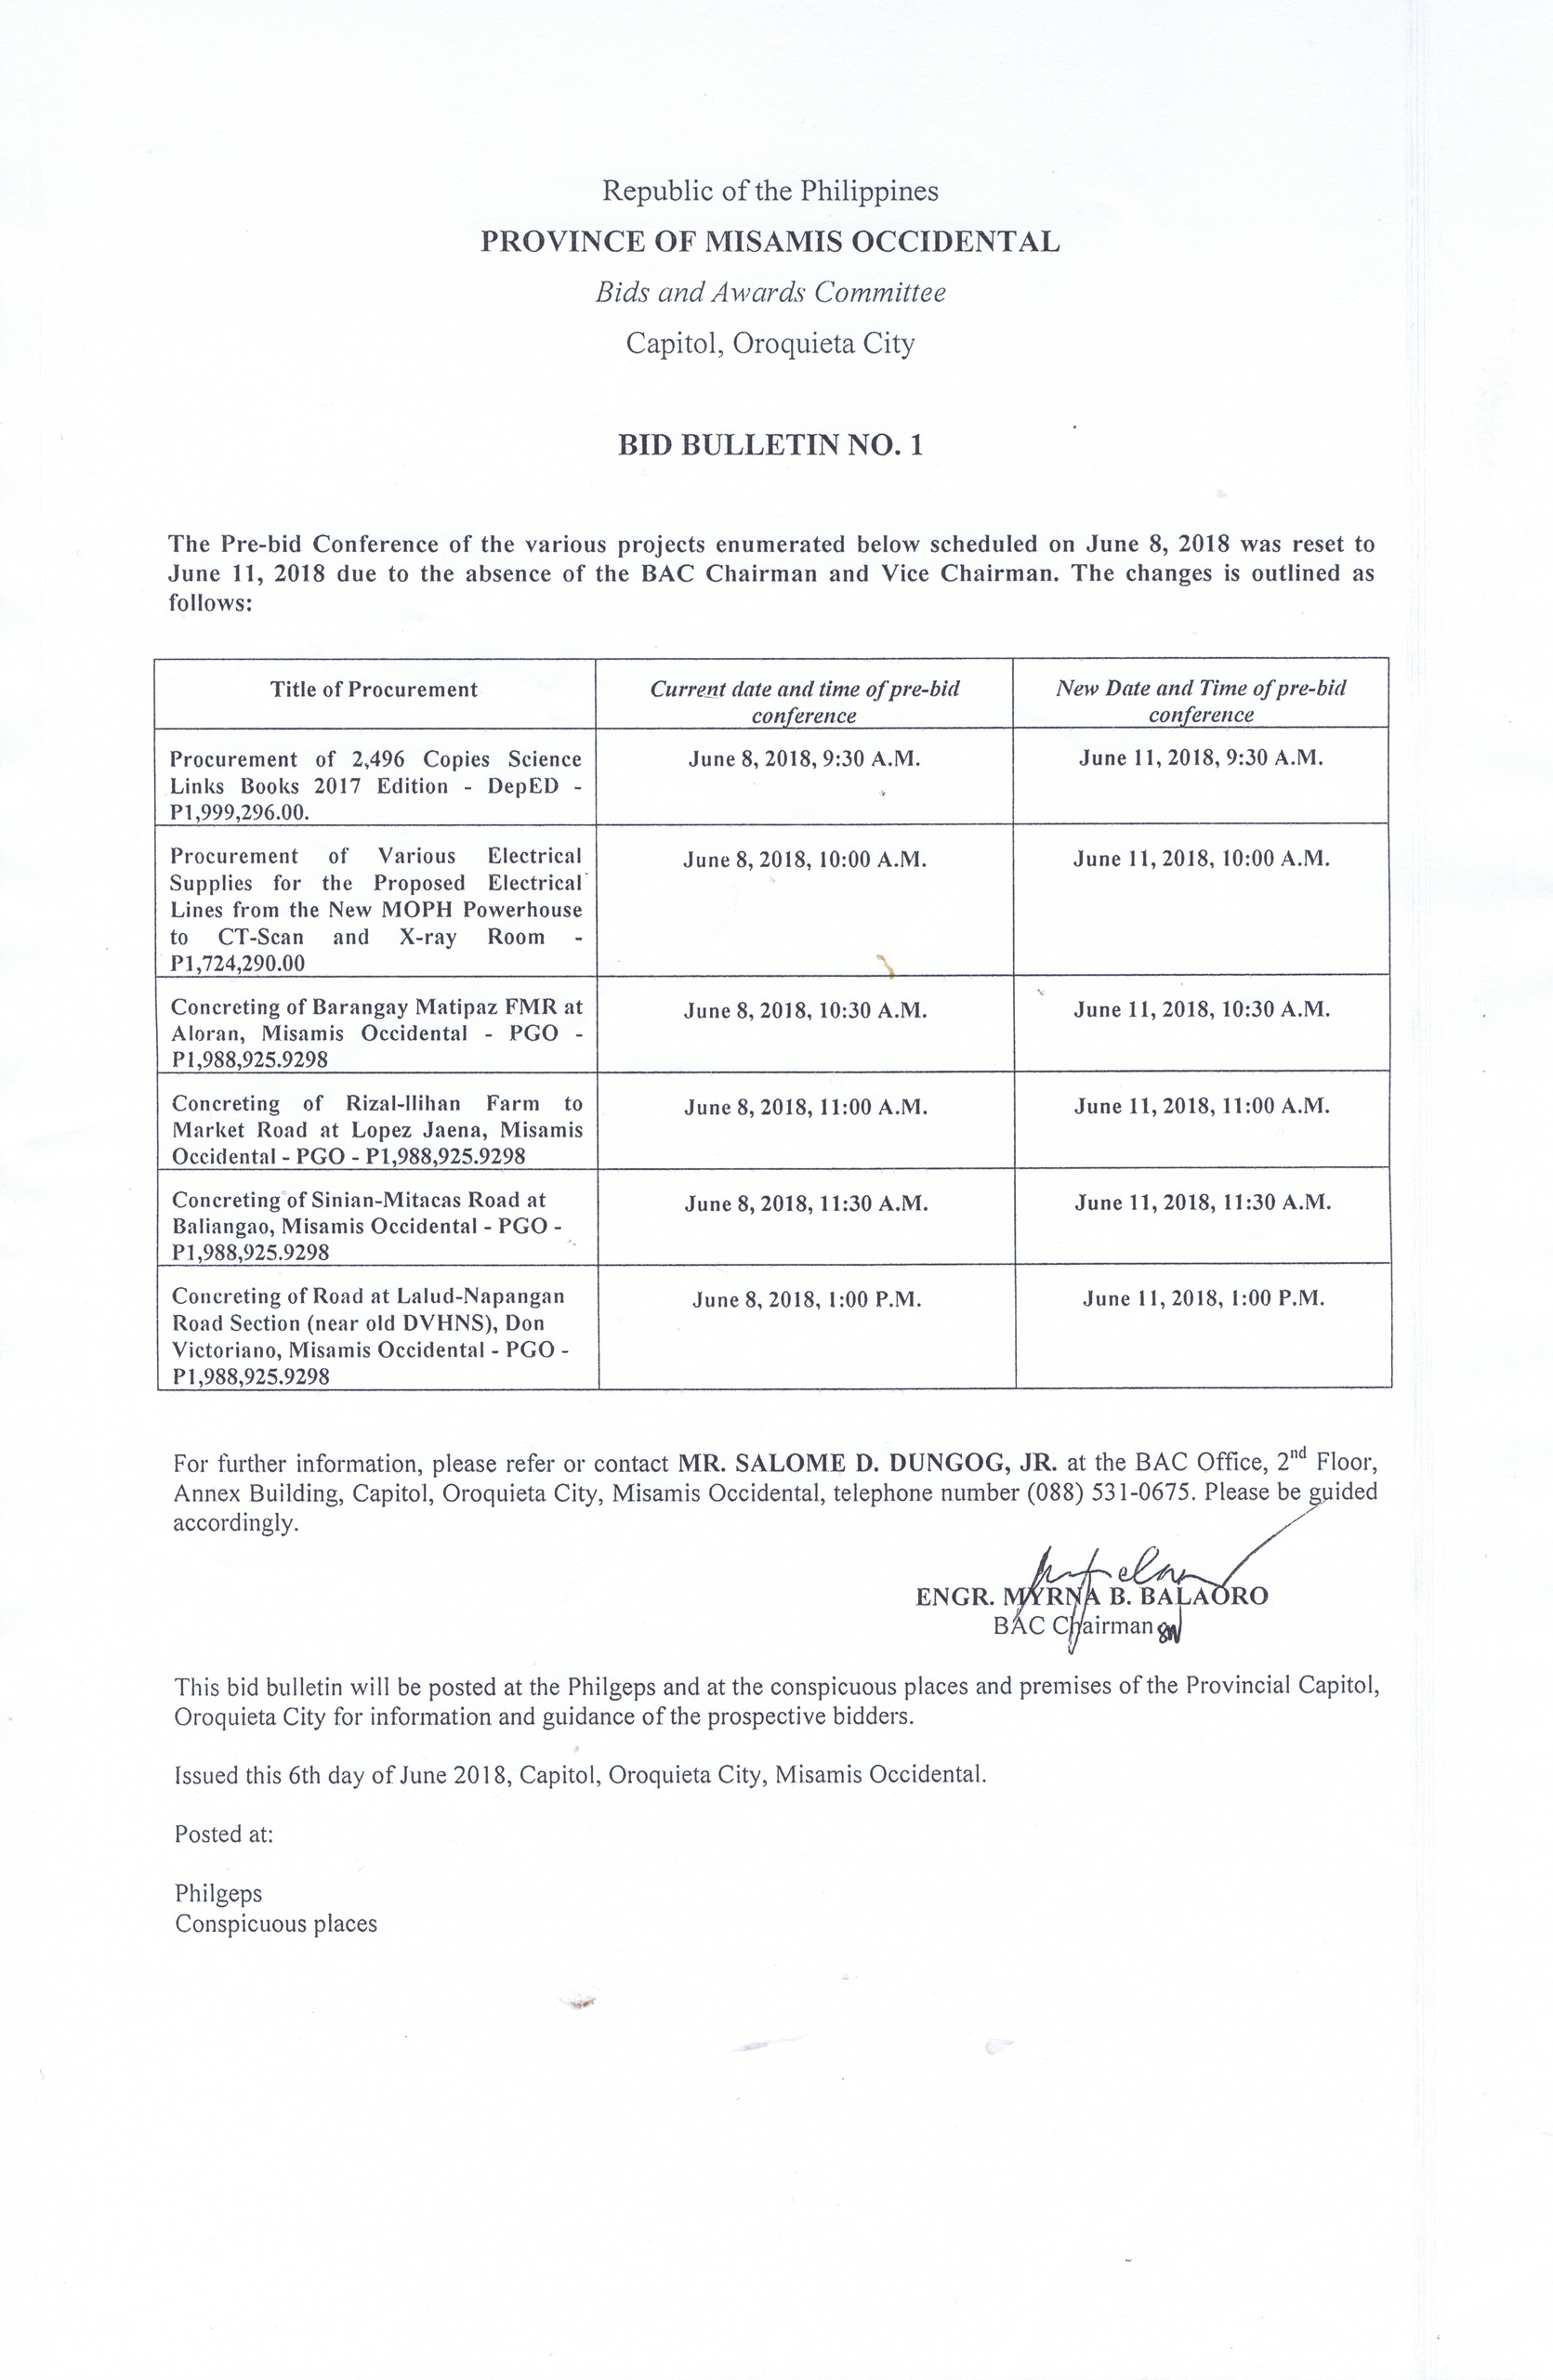 Bid Bulletin No. 1